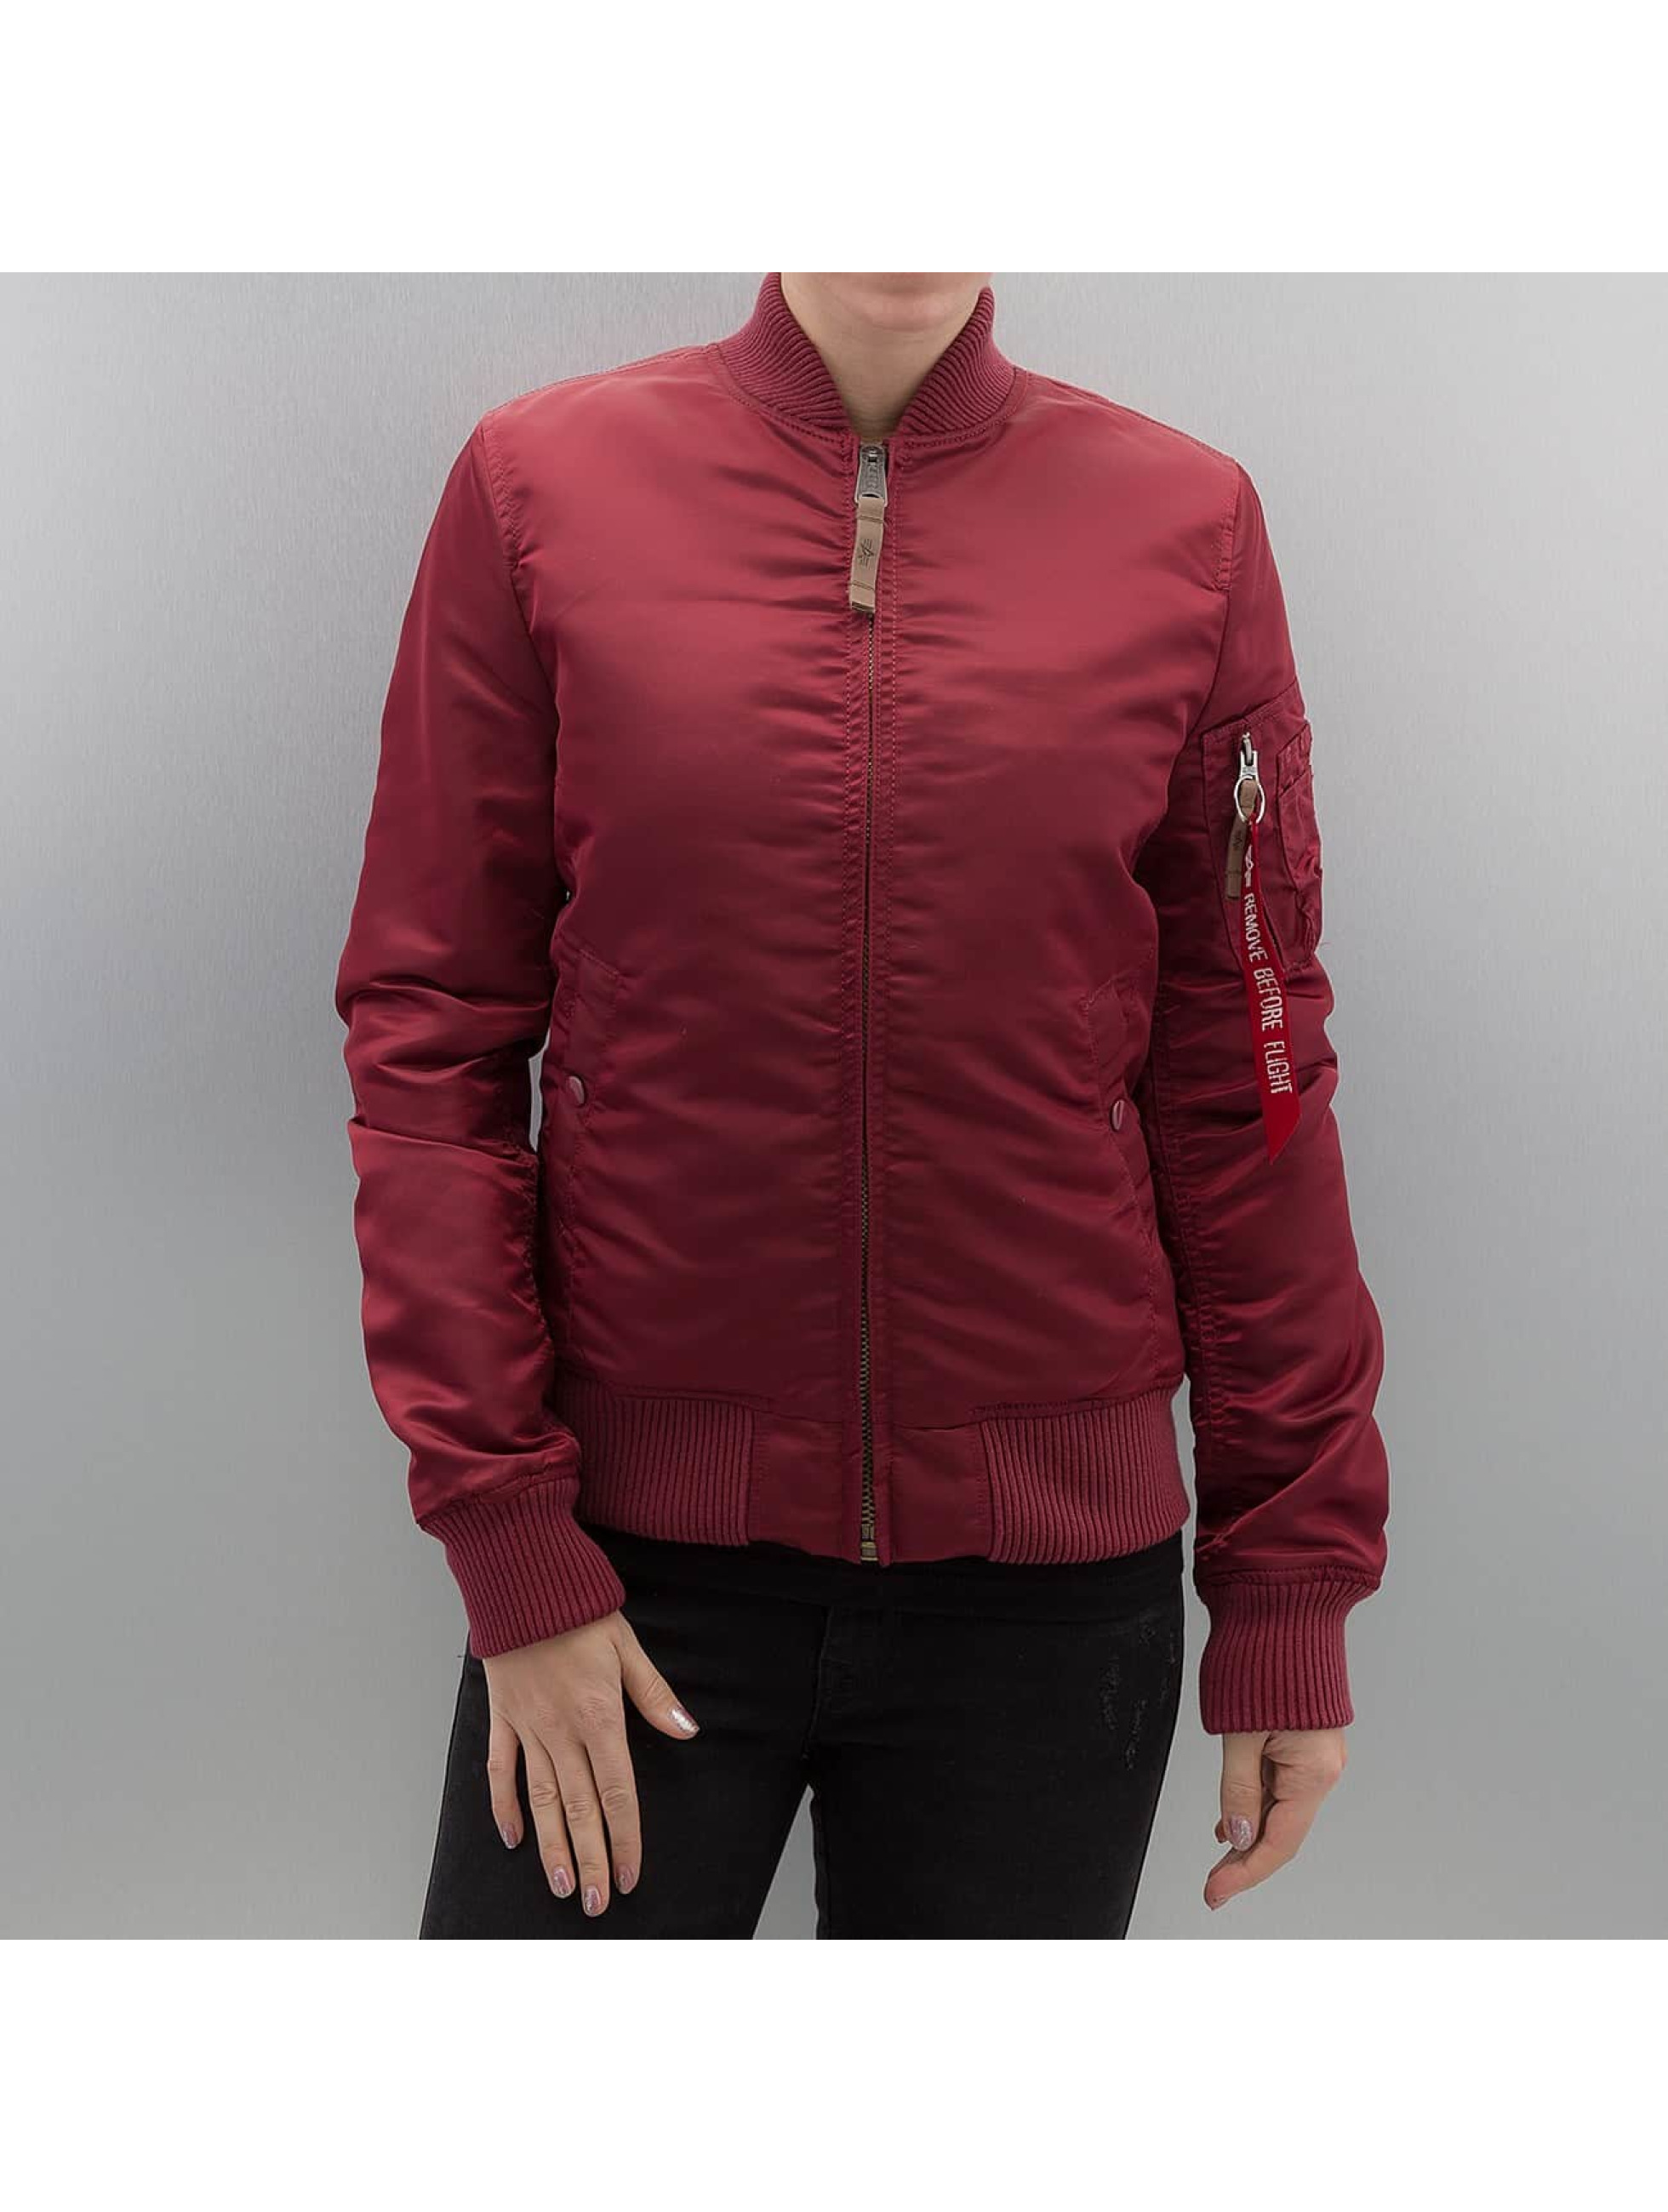 Alpha Industries Bomberová bunda MA 1 VF 59 Women èervená